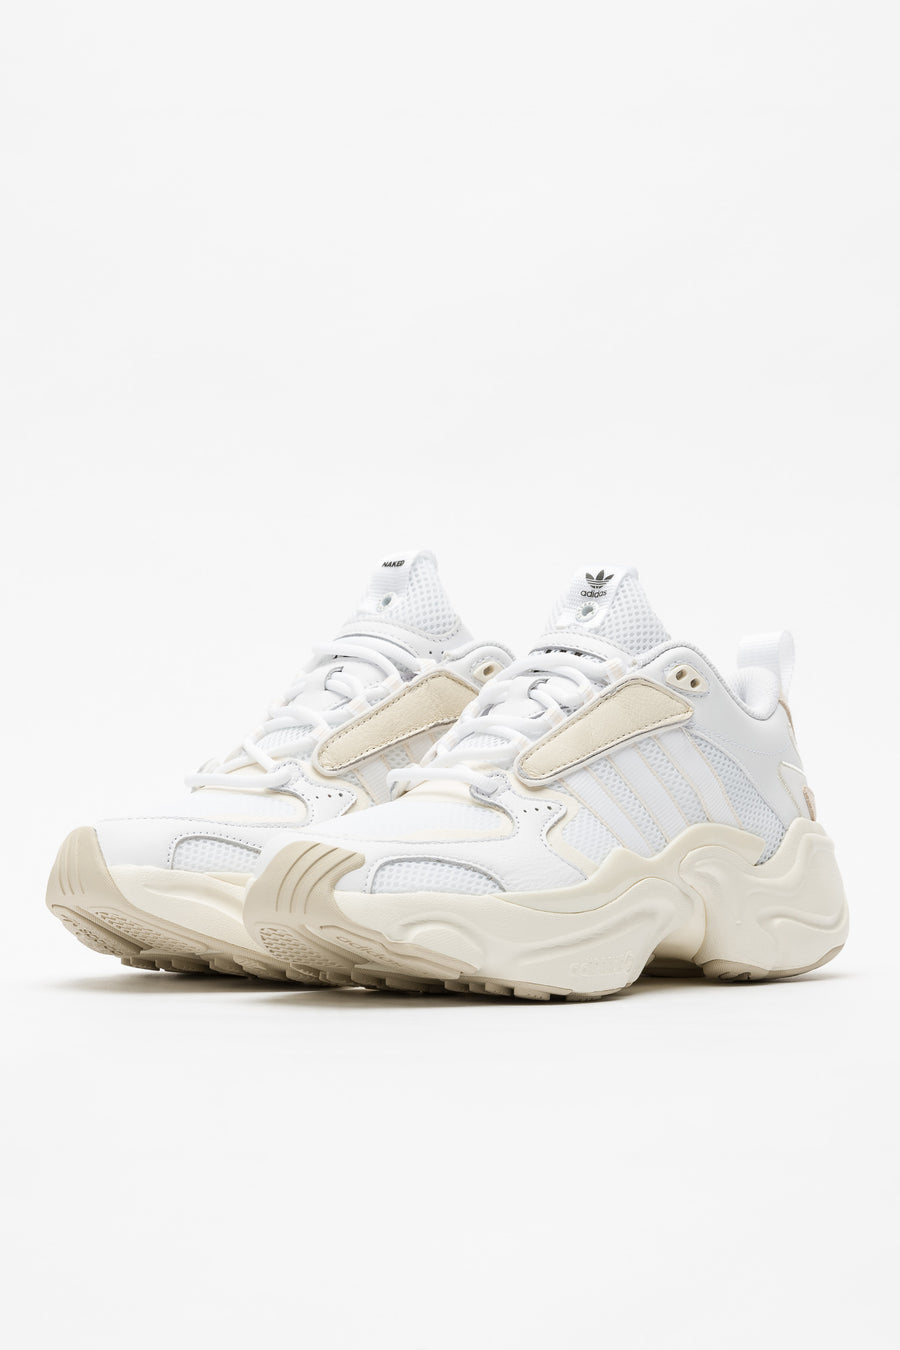 adidas Naked Magmur Runner in White/Cream - Notre